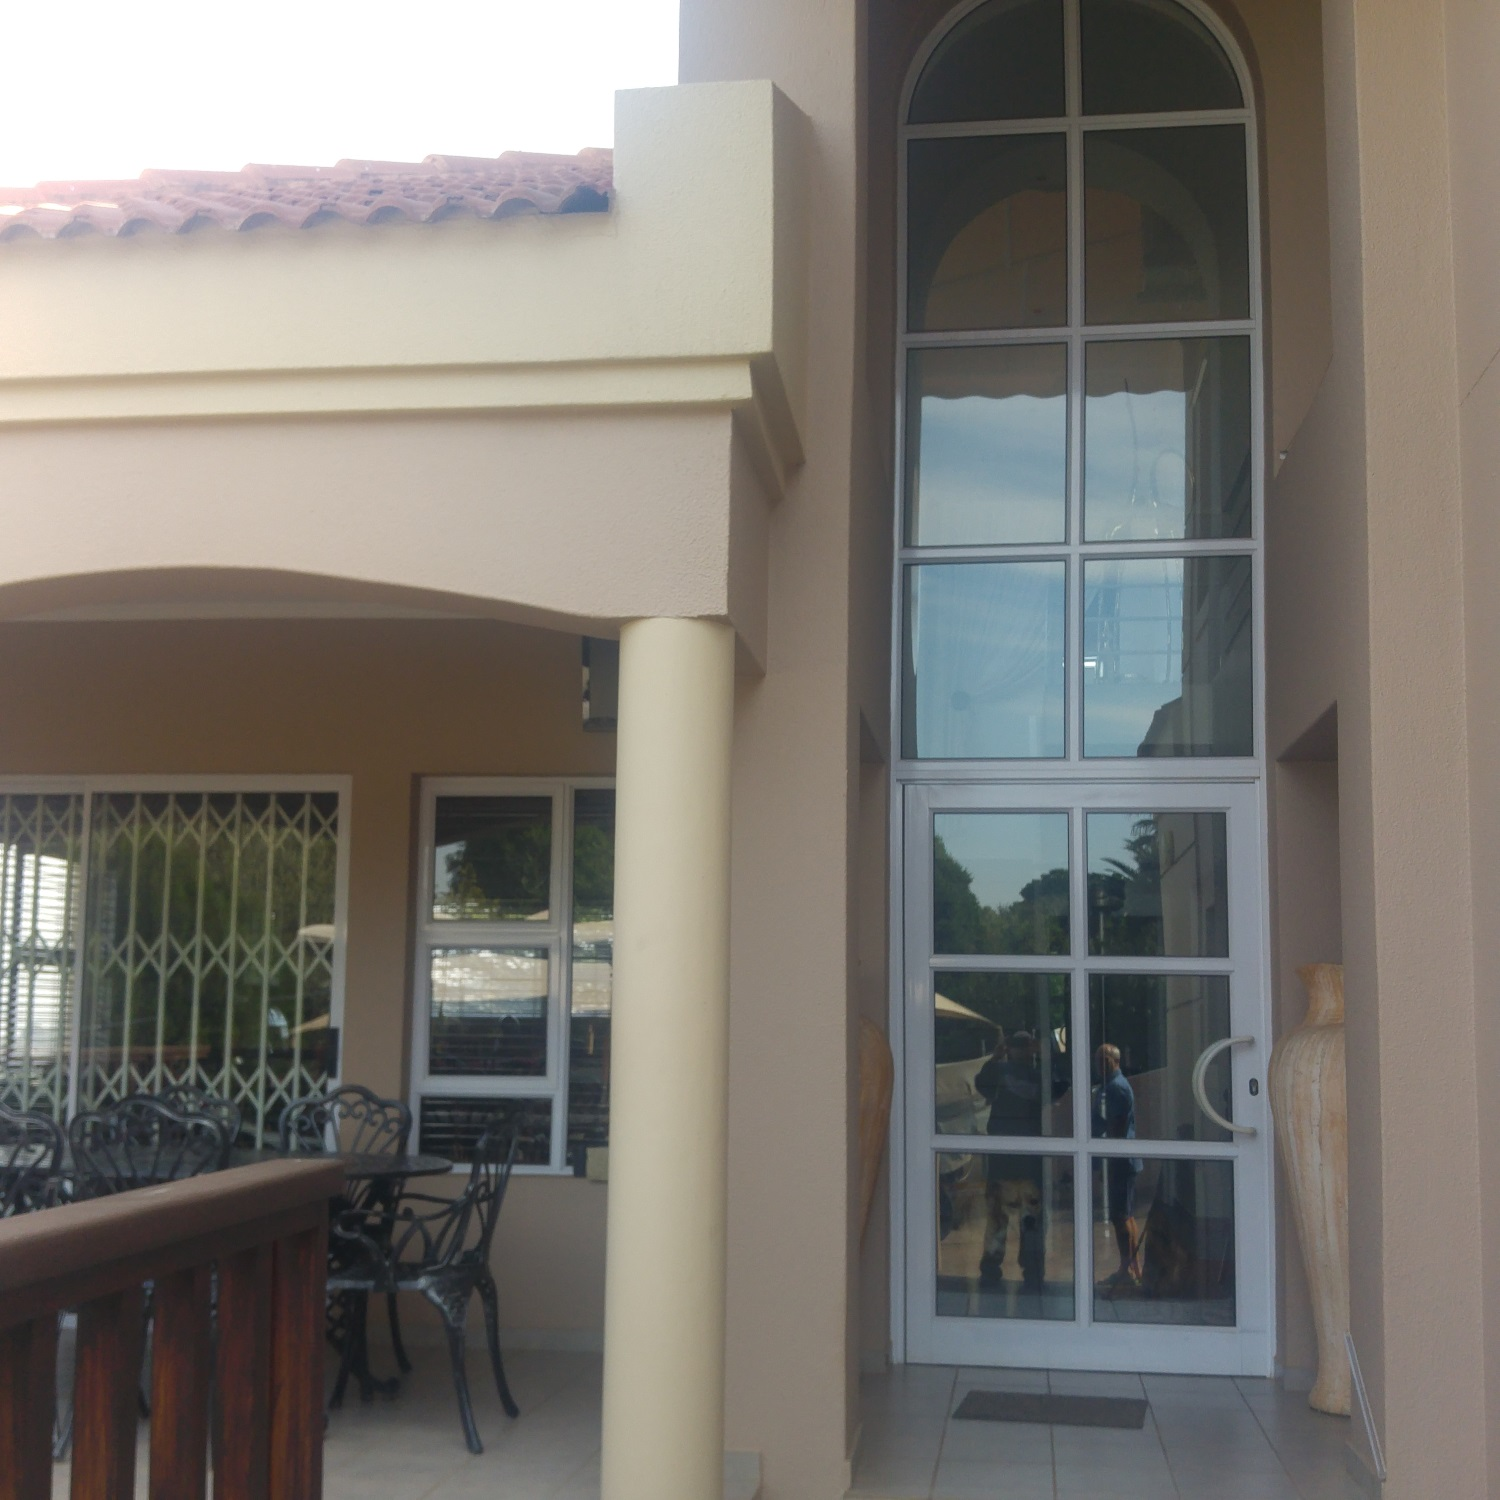 4 Bedroom Townhouse for sale in Glenvista Ext 6 ENT0001967 : photo#21